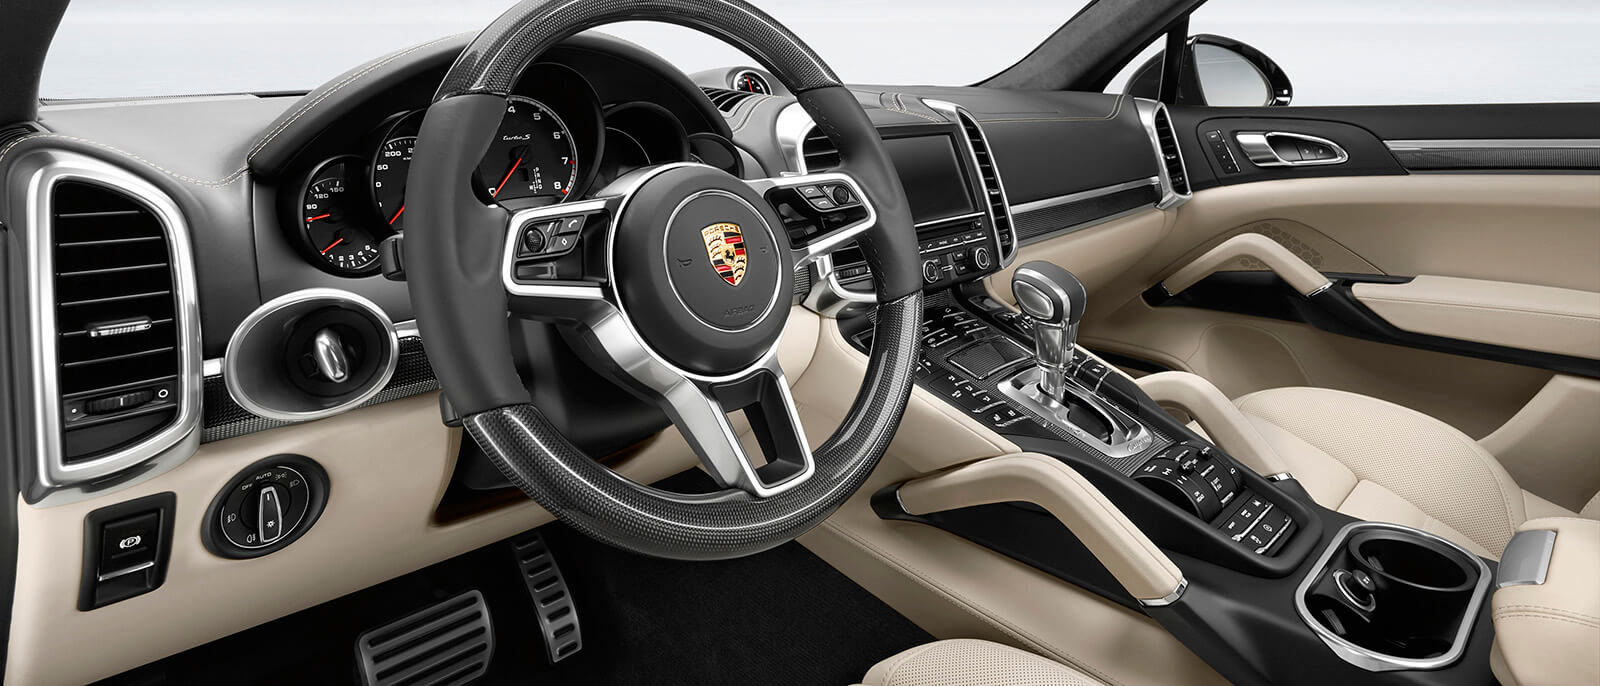 Test the power of 2017 porsche cayenne turbo s yourself Porsche cayenne interior parts